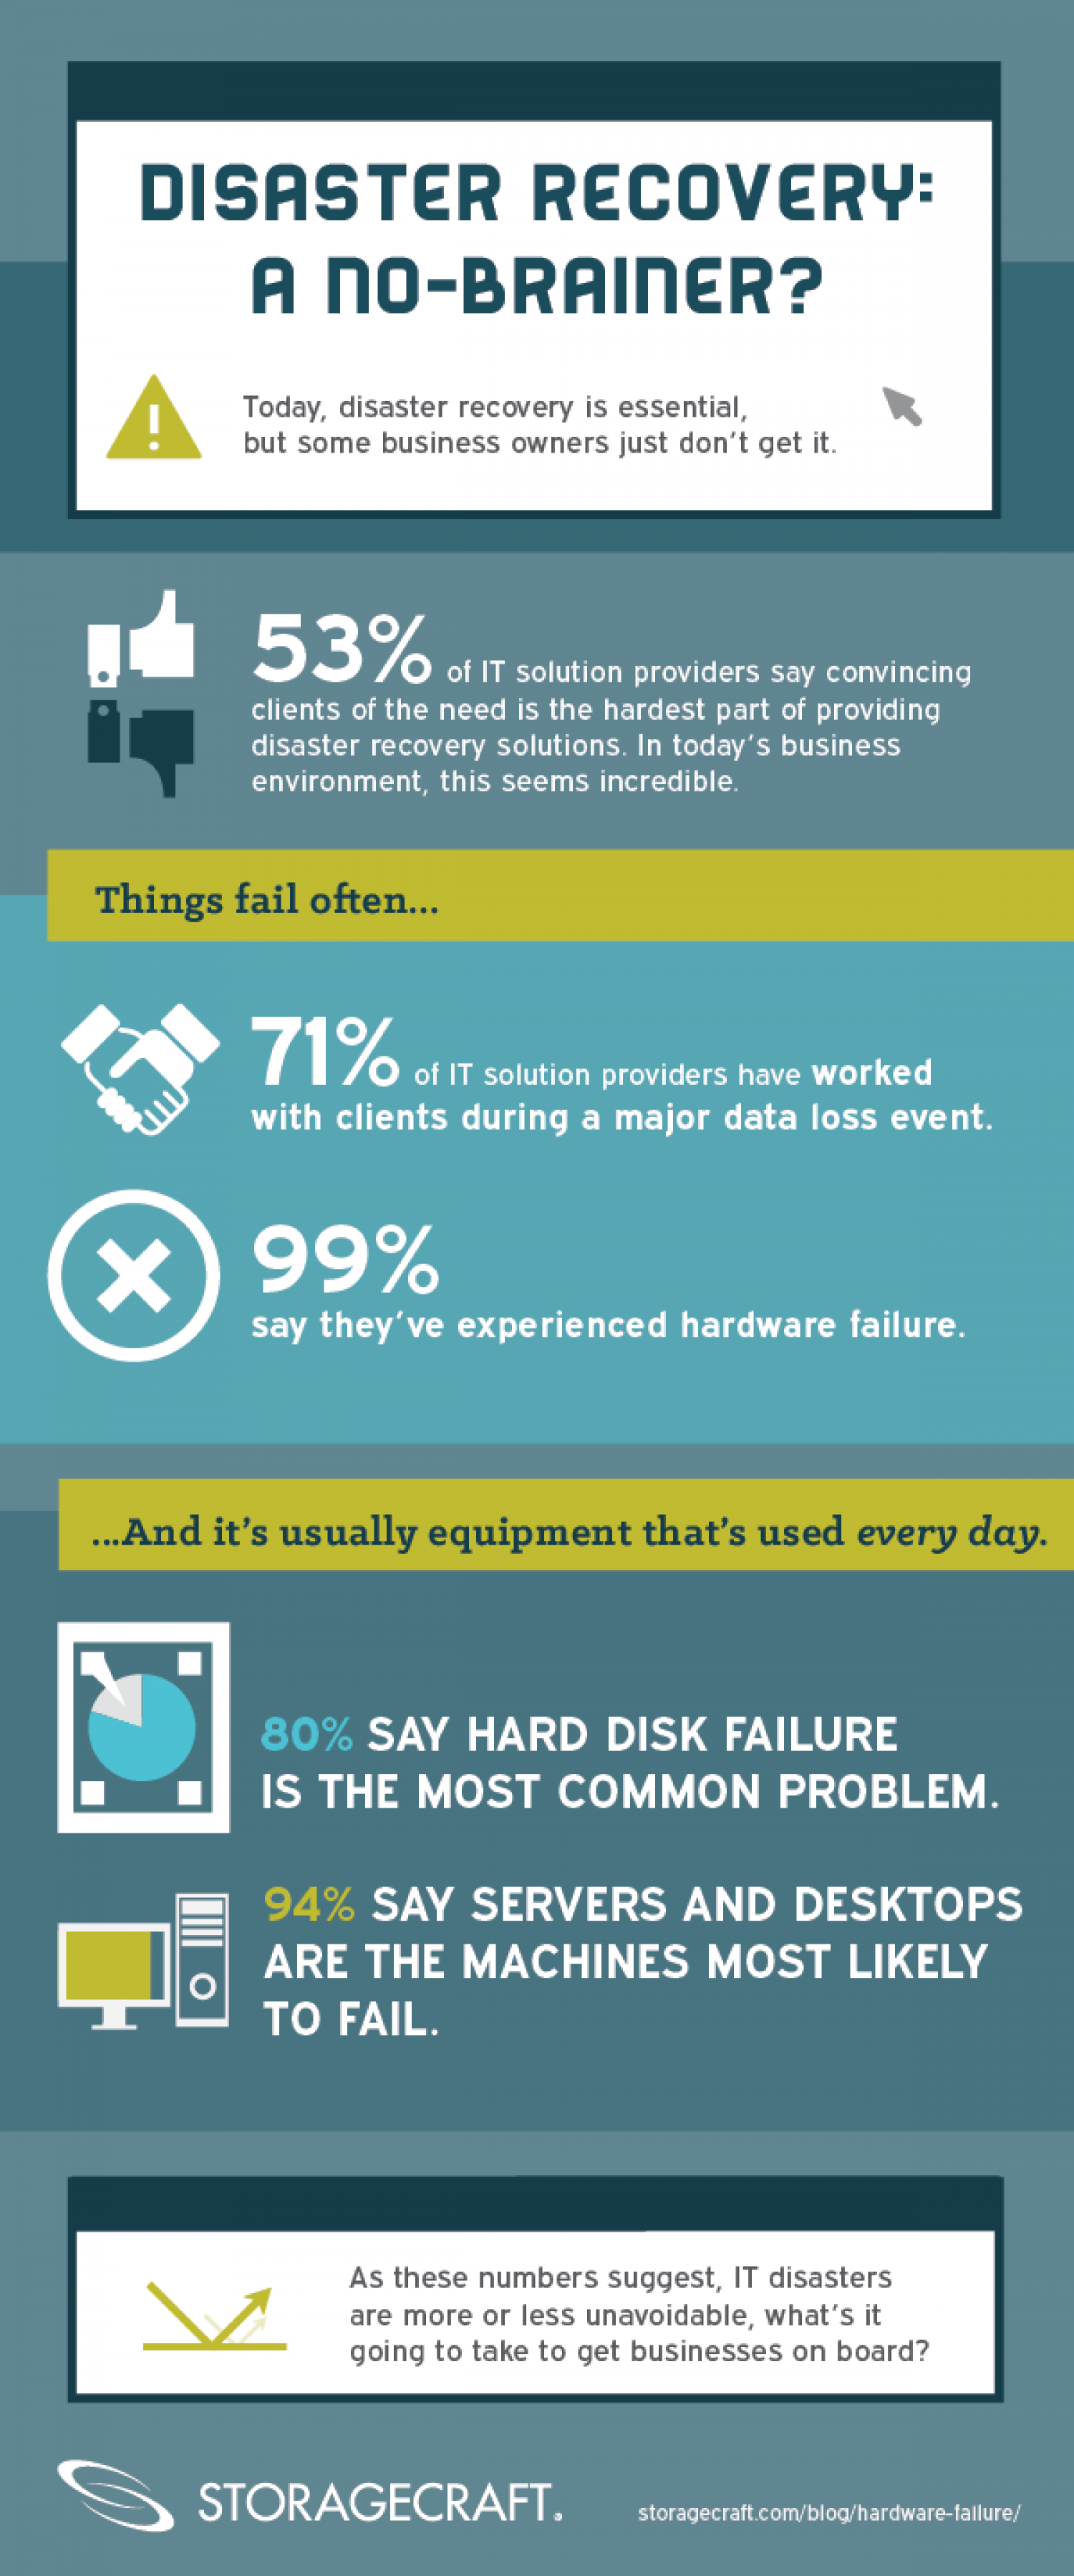 Disaster Recovery: A No-brainer? Infographic